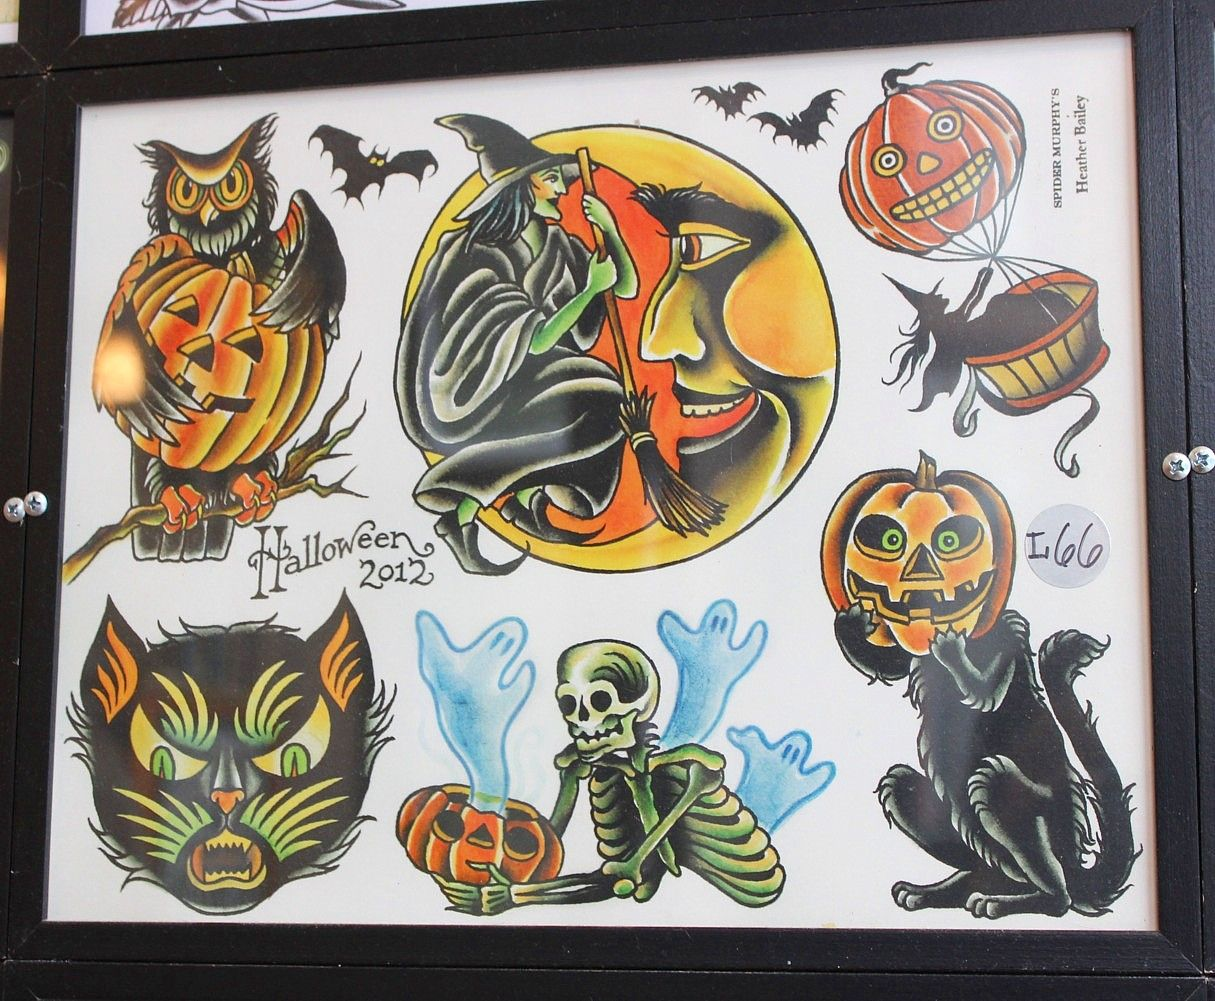 Type O Negative halloween tattoo flash 2 sheets limited to 20 sets ...